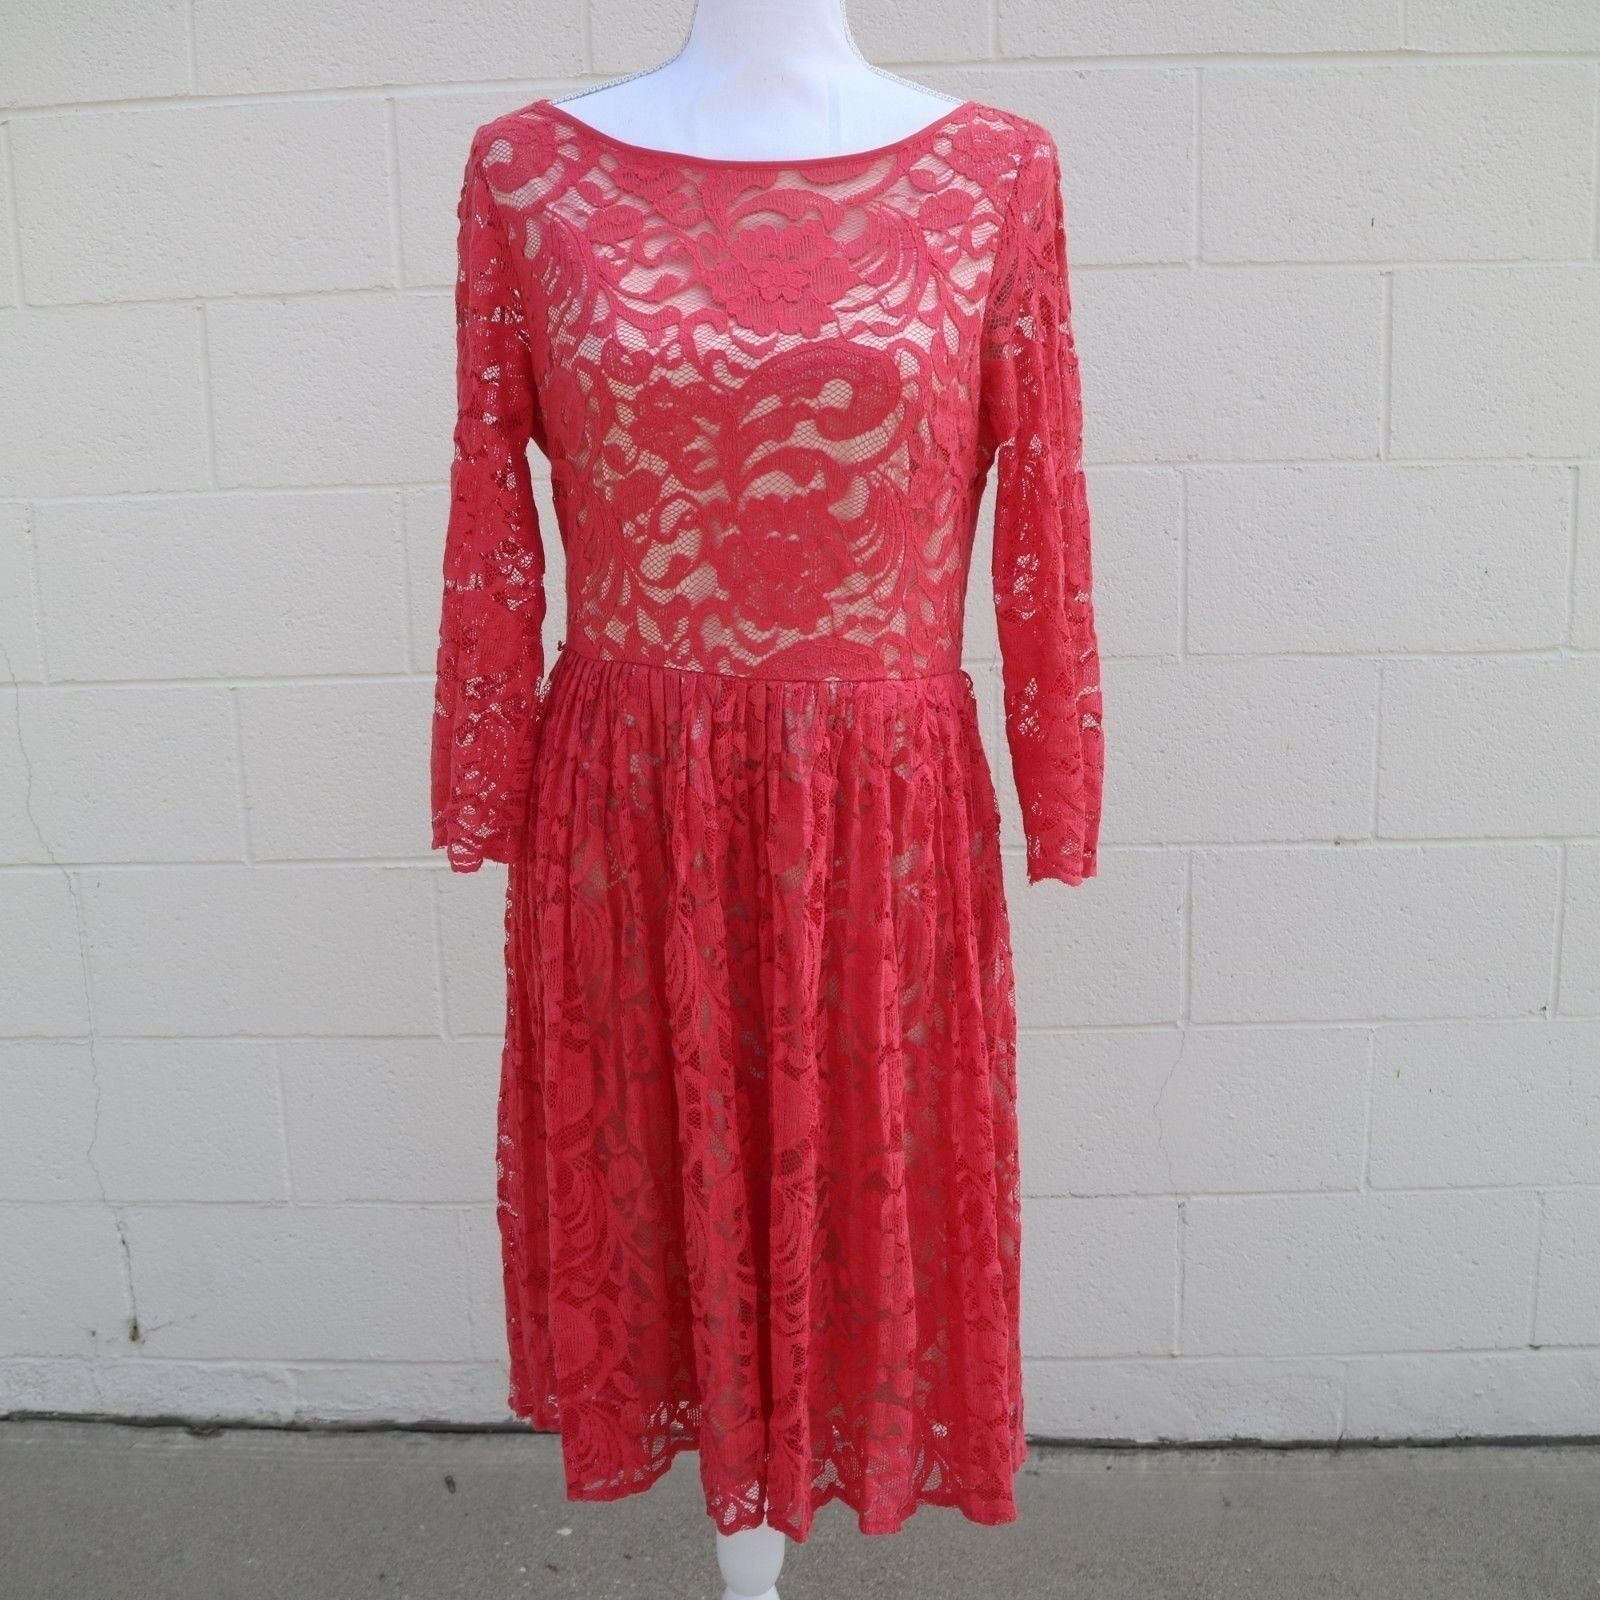 Eliza J damen Salmon Coral Rosa Lace Fit Flare Dress with Sleeves Größe 10